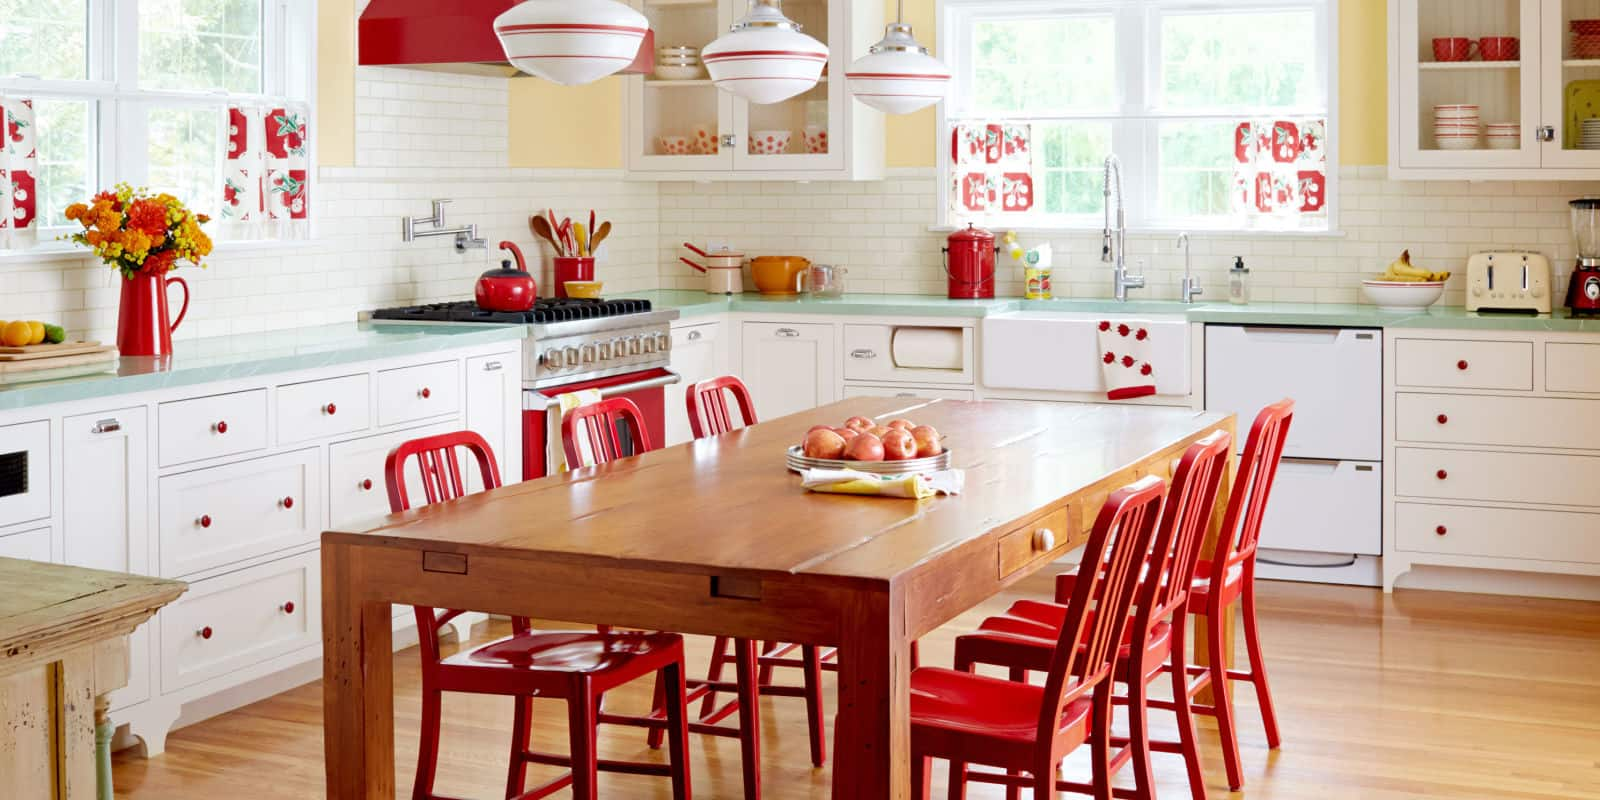 What is more classic than red and white together